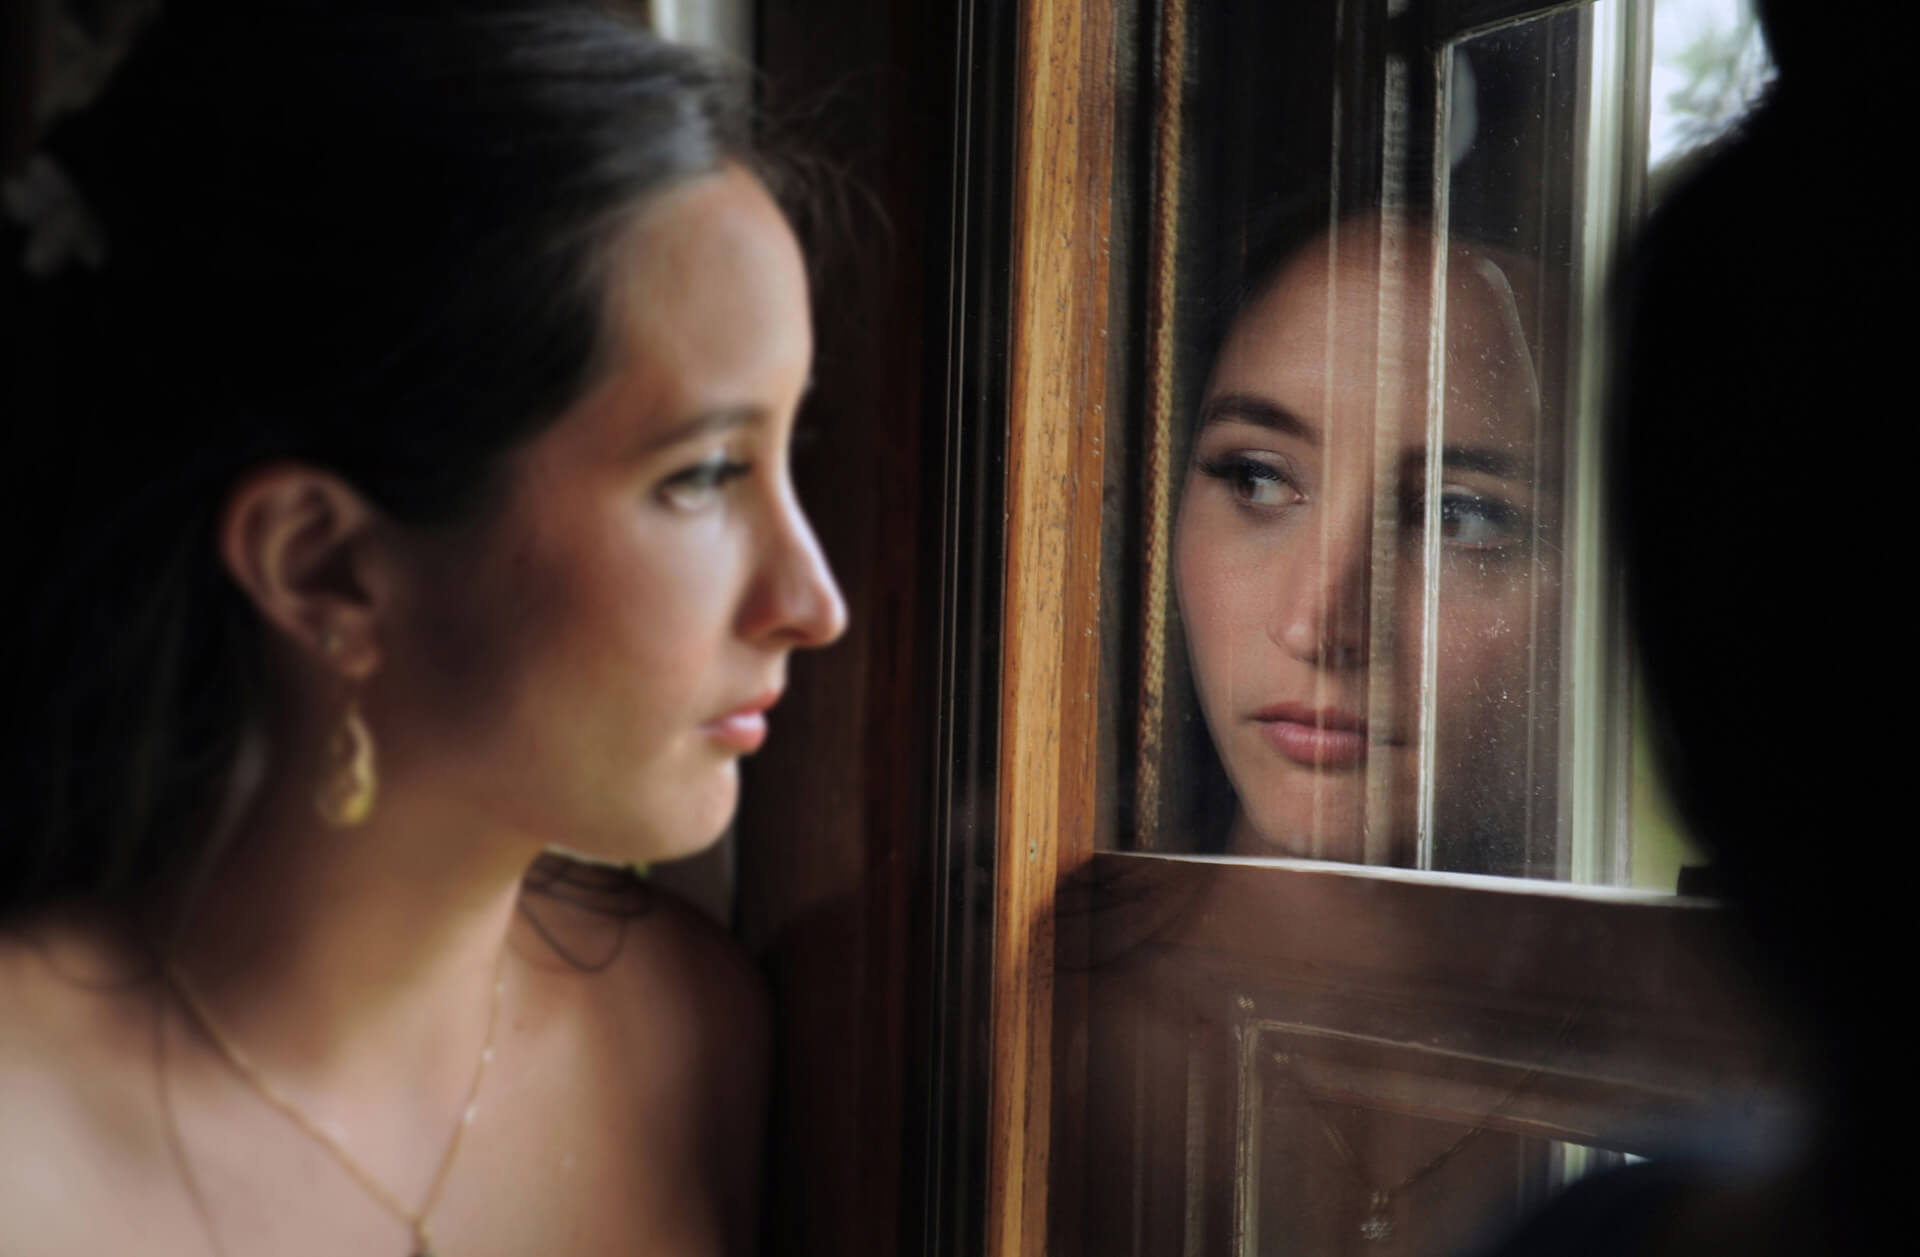 Michigan wedding photographer takes candid photos of a bride nervously looking out a window watching guests arrive for her Addison Oaks wedding in Romeo, Michigan.